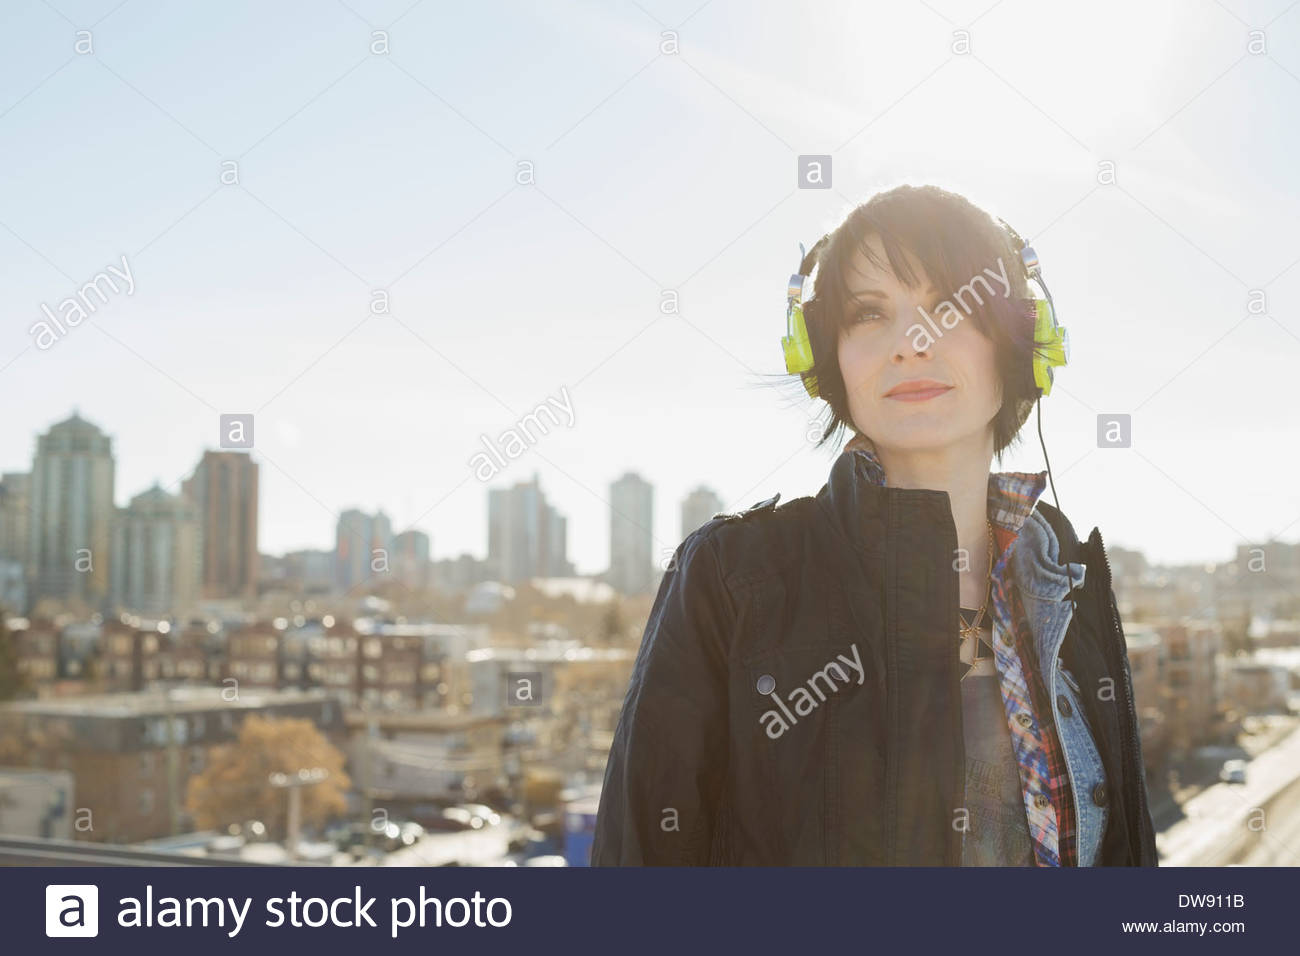 Woman listening to headphones outdoors Photo Stock